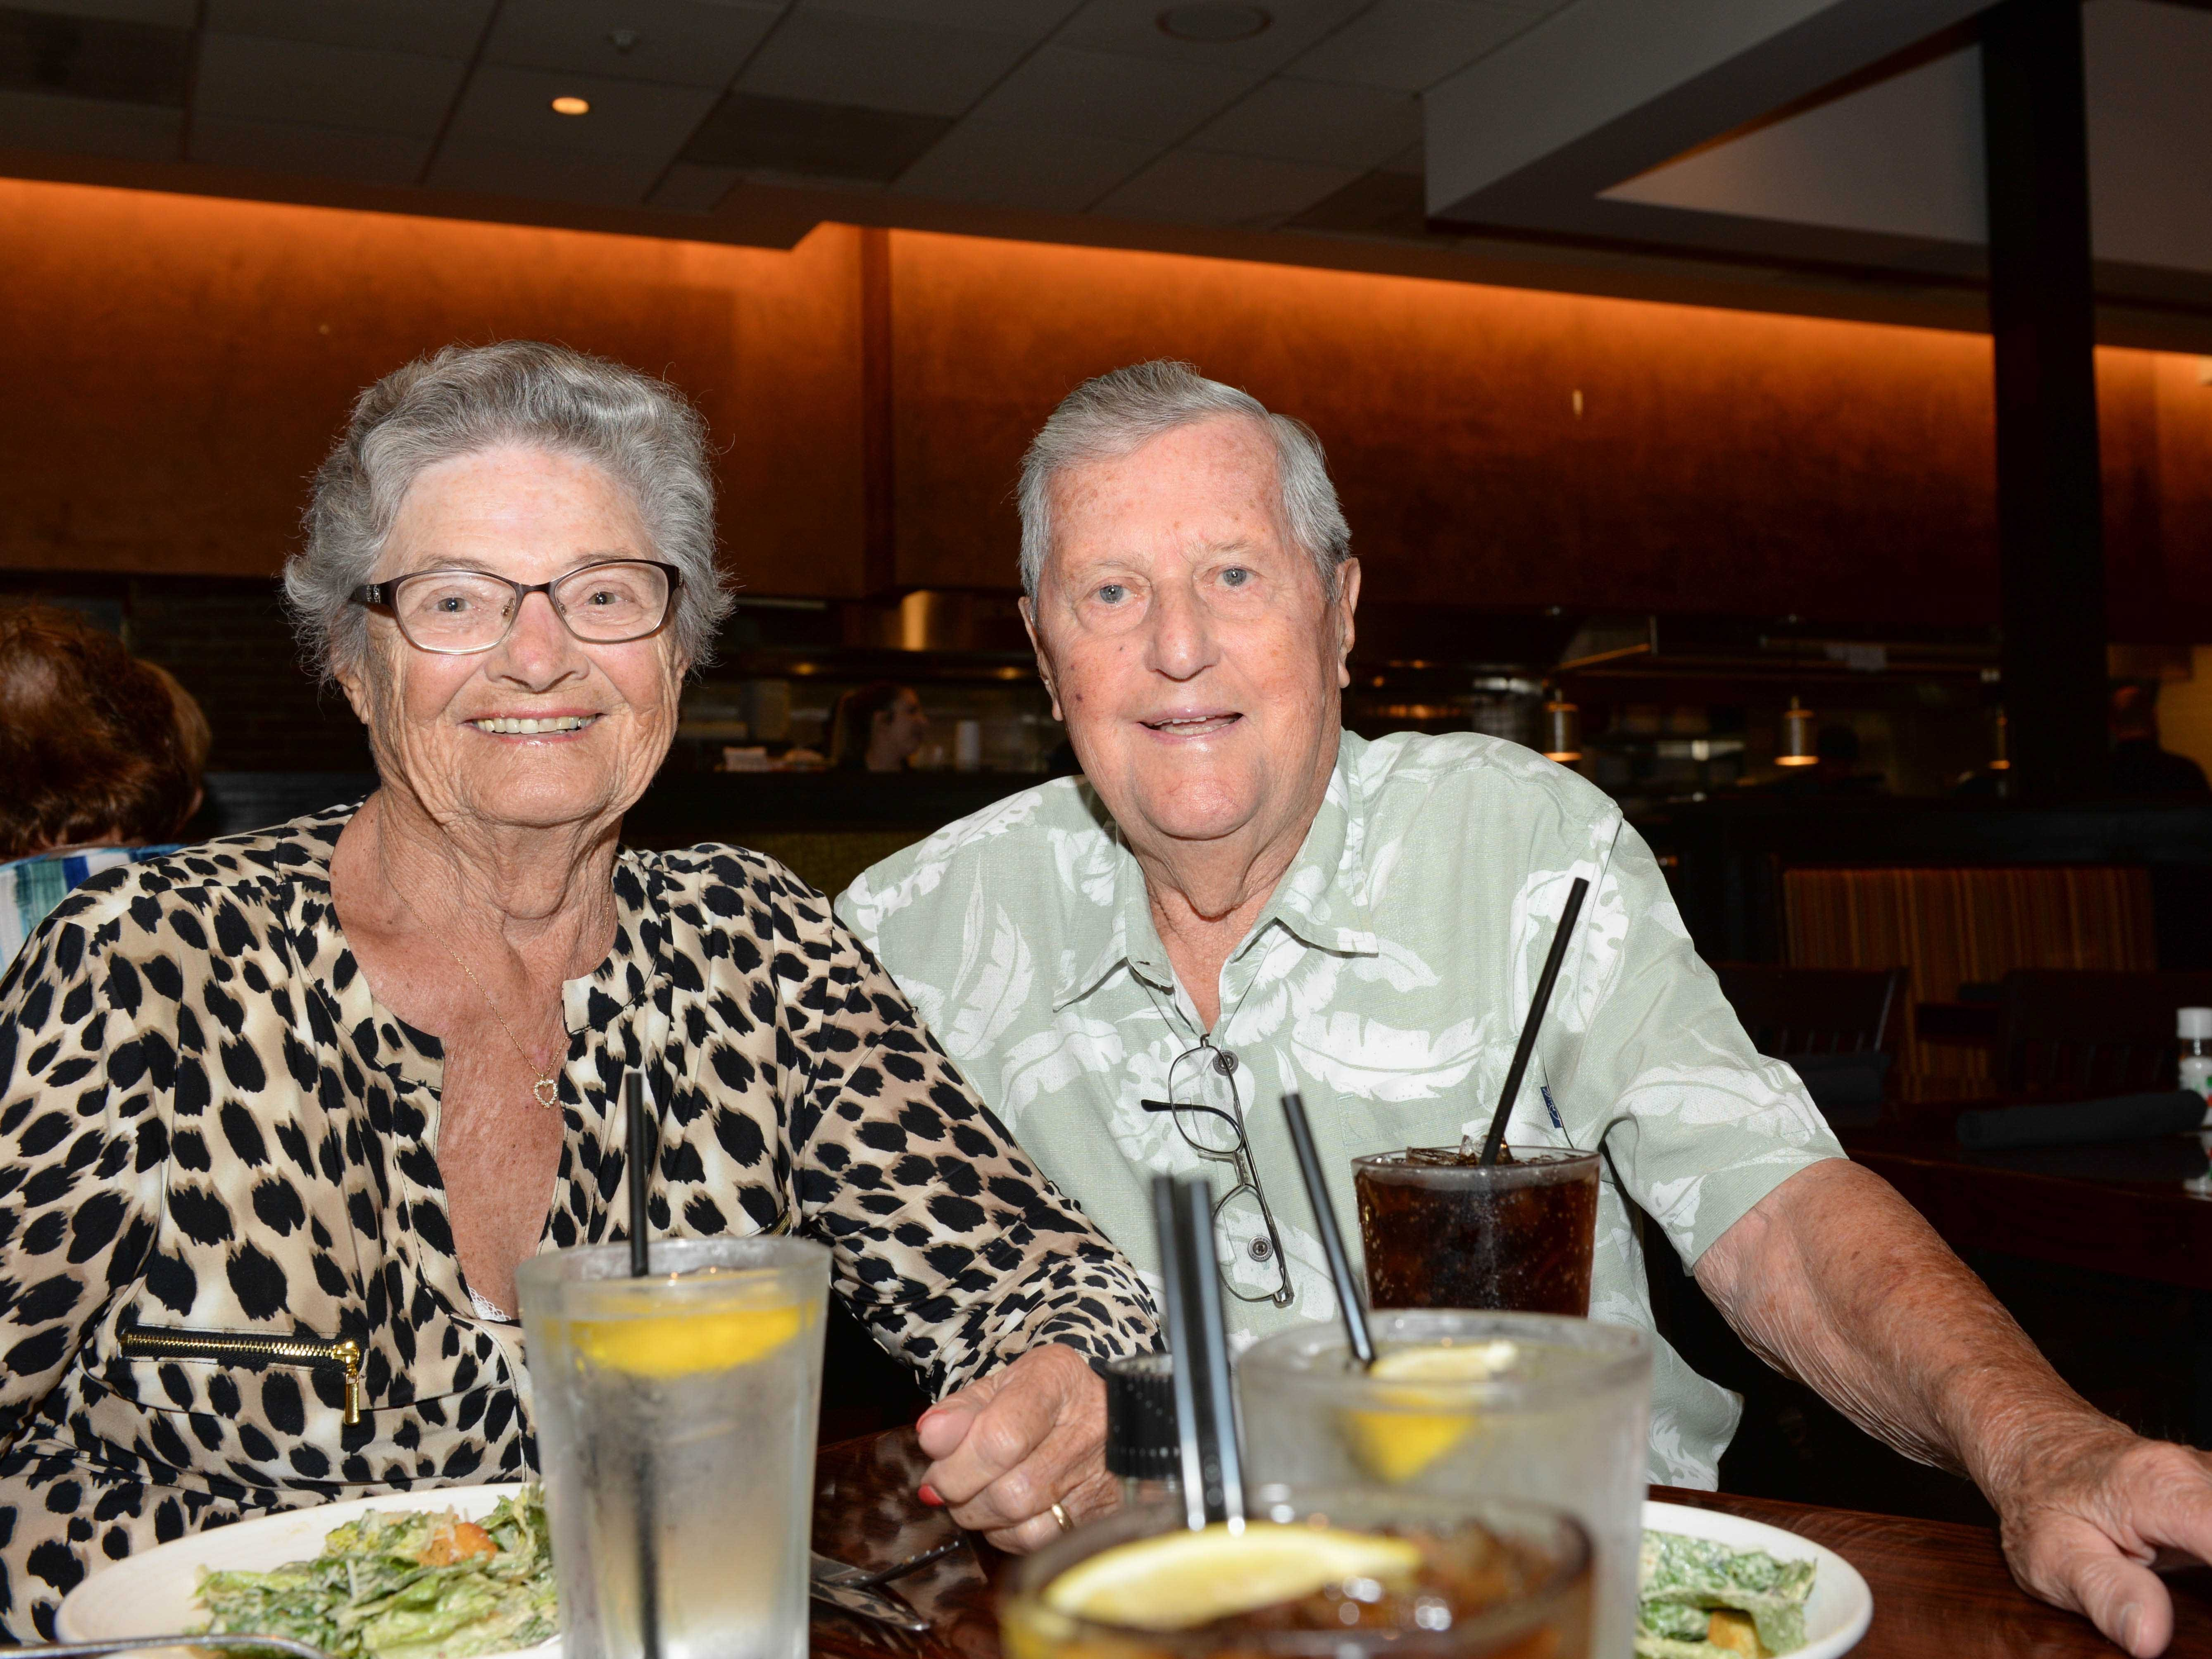 Barbara and Tony Young at Carrabba's Italian Grill in St. Lucie West.